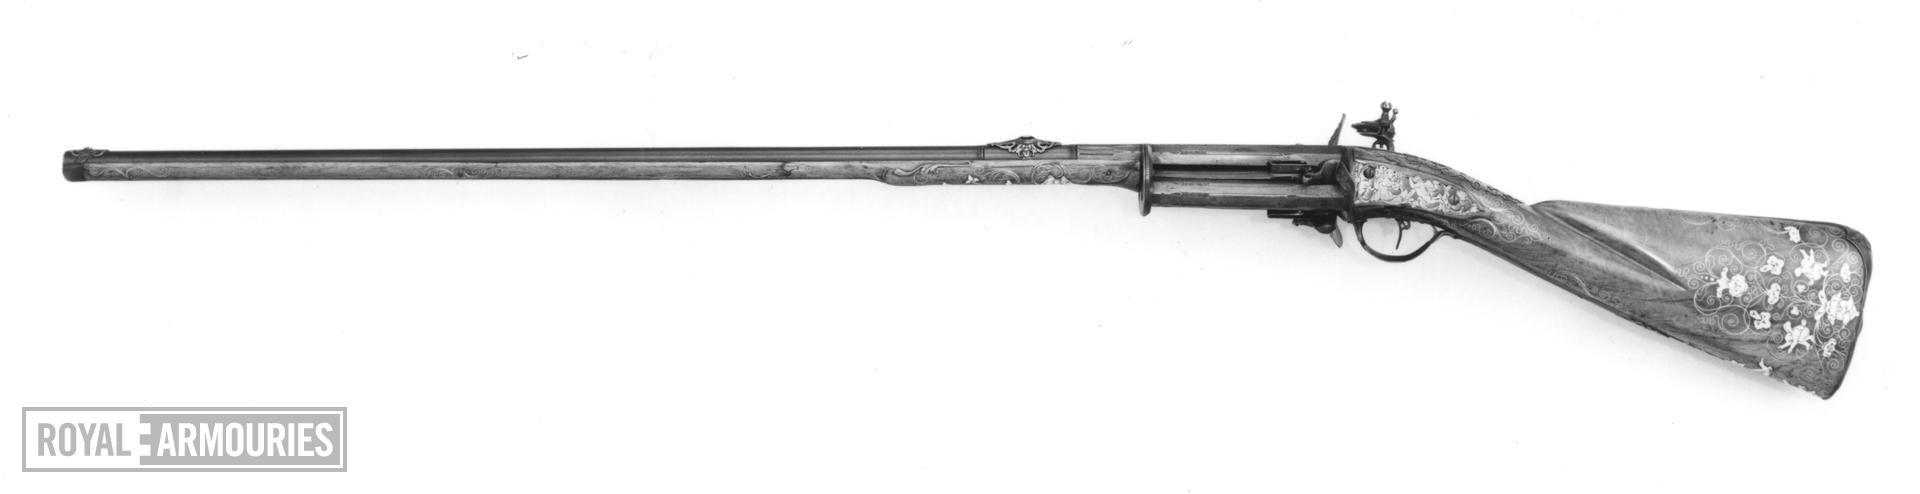 Flintlock repeating sporting gun - N/A With three revolving chambers each being fitted with separate pan and frizzen.